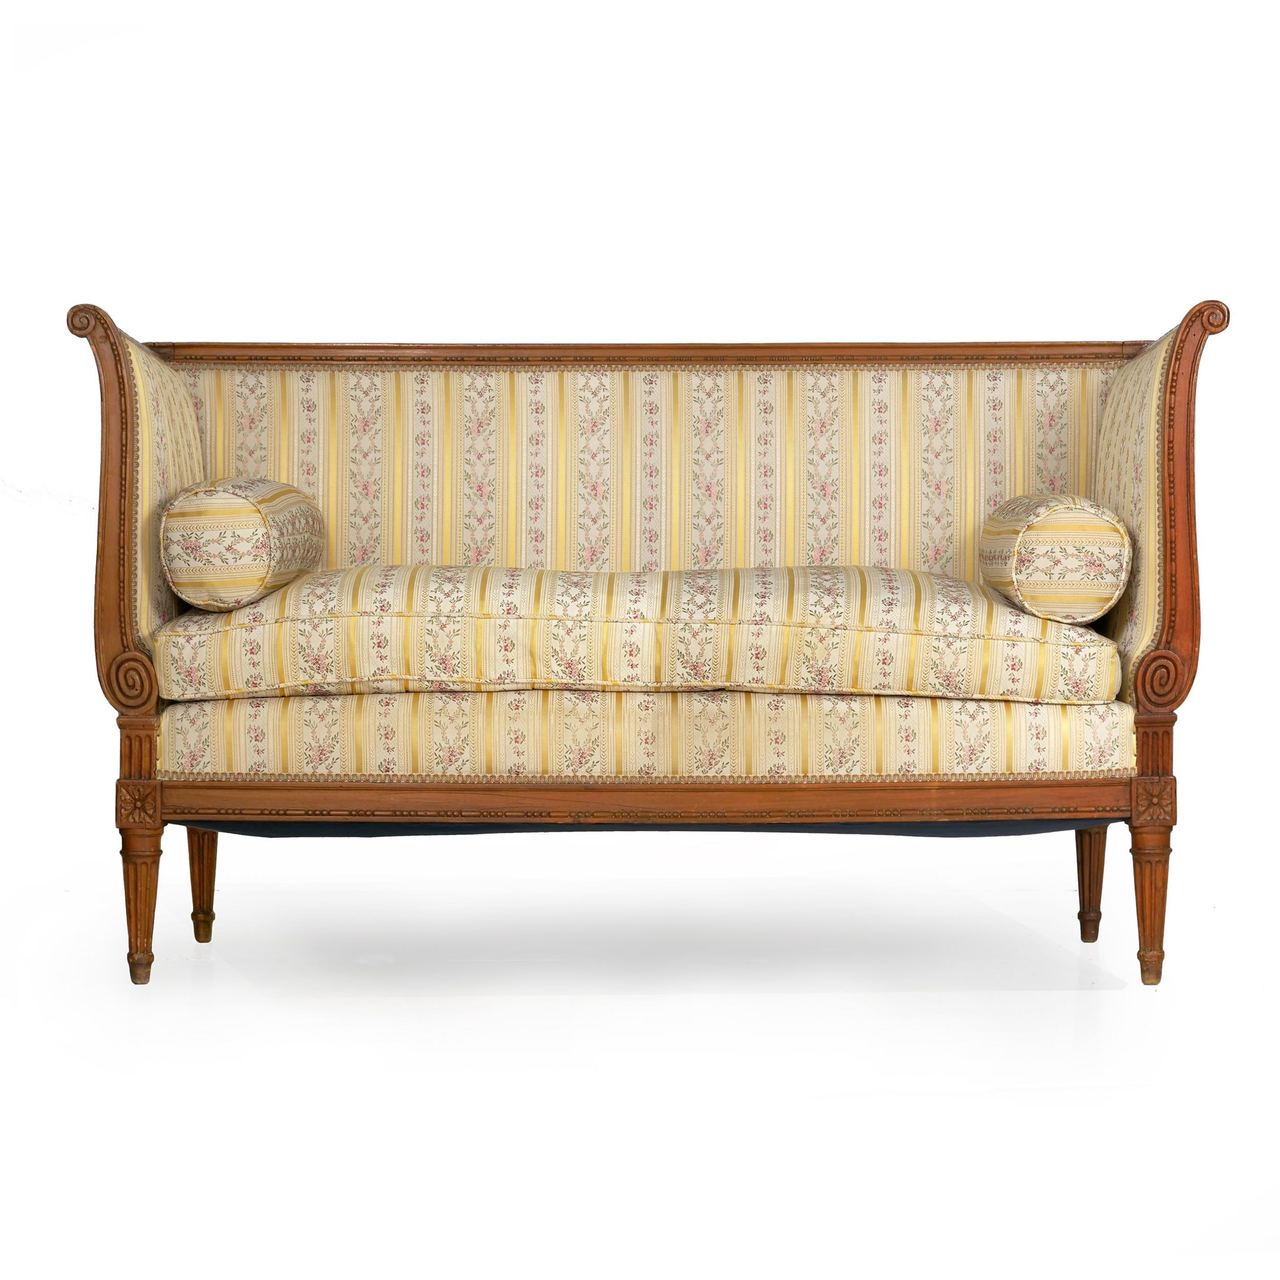 Full Size of Canape Sofa French Provincial Carved Fruitwood Canap Big Günstig Zweisitzer Leder Rotes L Form Muuto Schillig Boxspring Modernes Petrol Mit Boxen Reiniger Sofa Canape Sofa